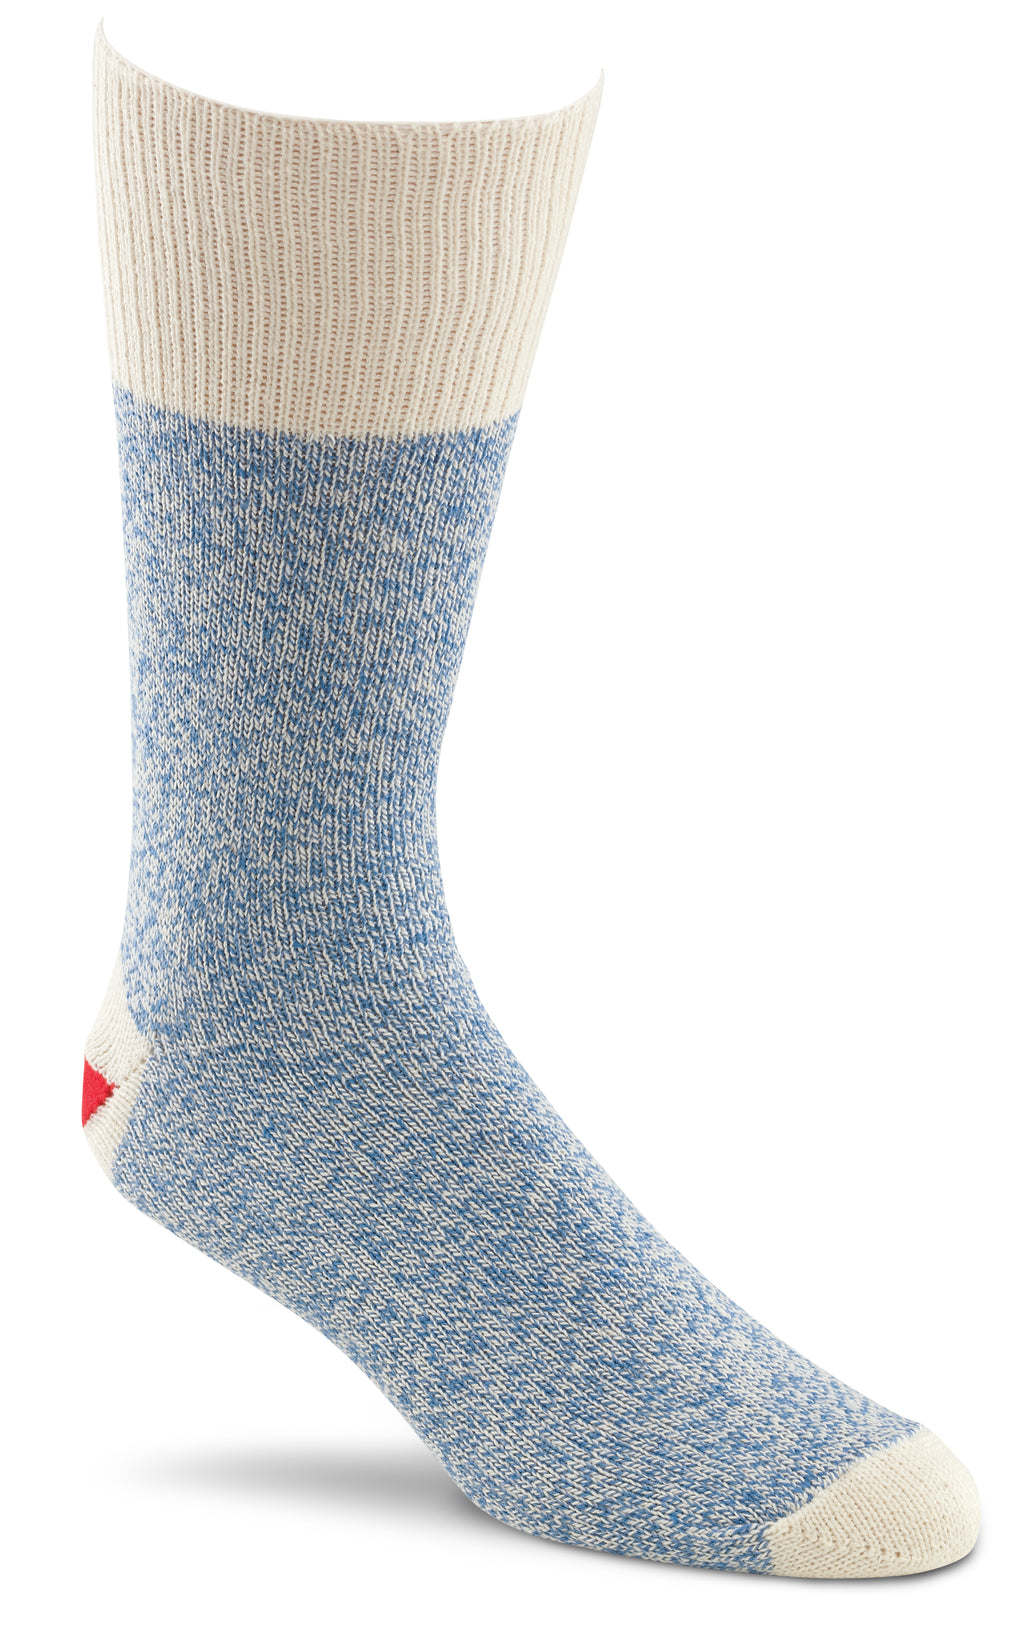 Fox River Original Rockford Red Heel® Adult Monkey Crew Socks - Best Seller!